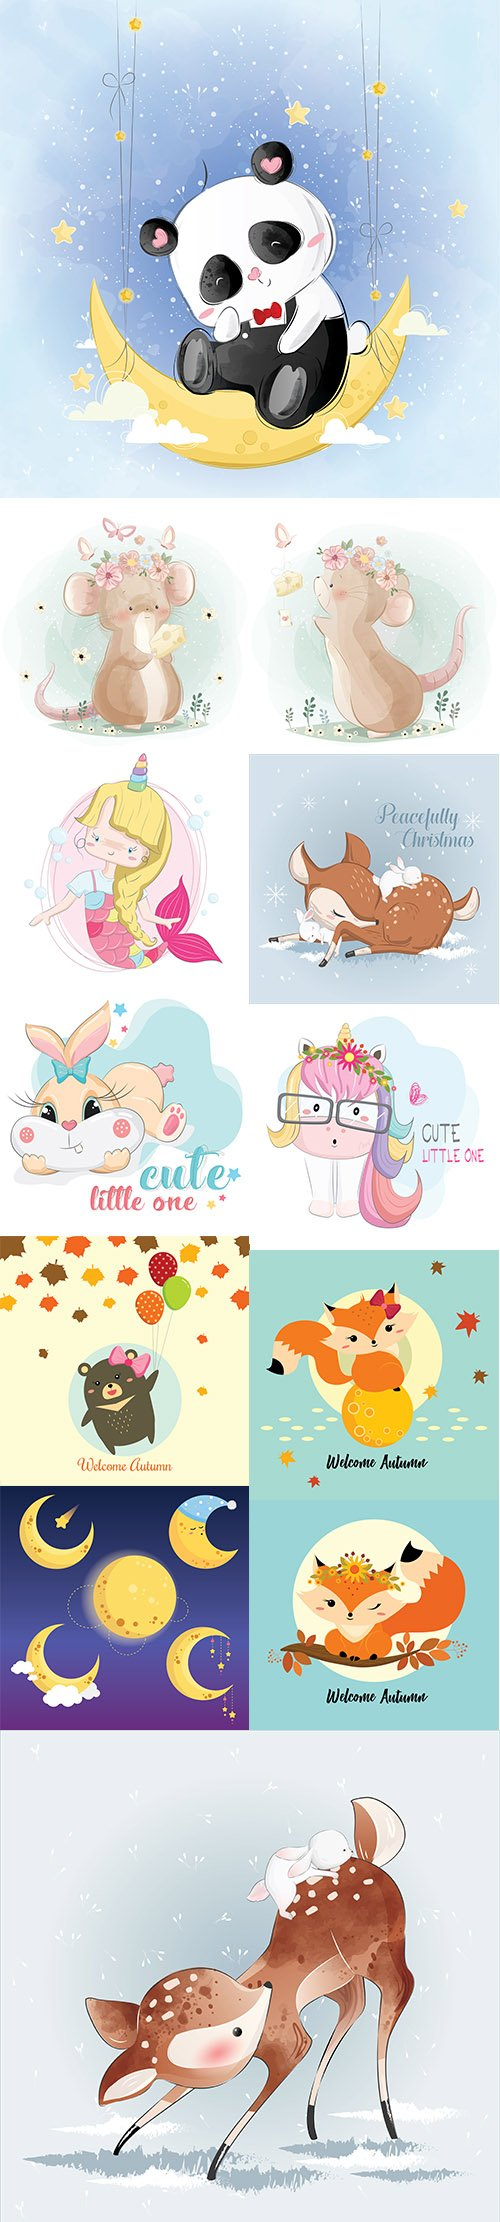 Hand Draw Watercolor Adorable Animals Illustrations Vol 5